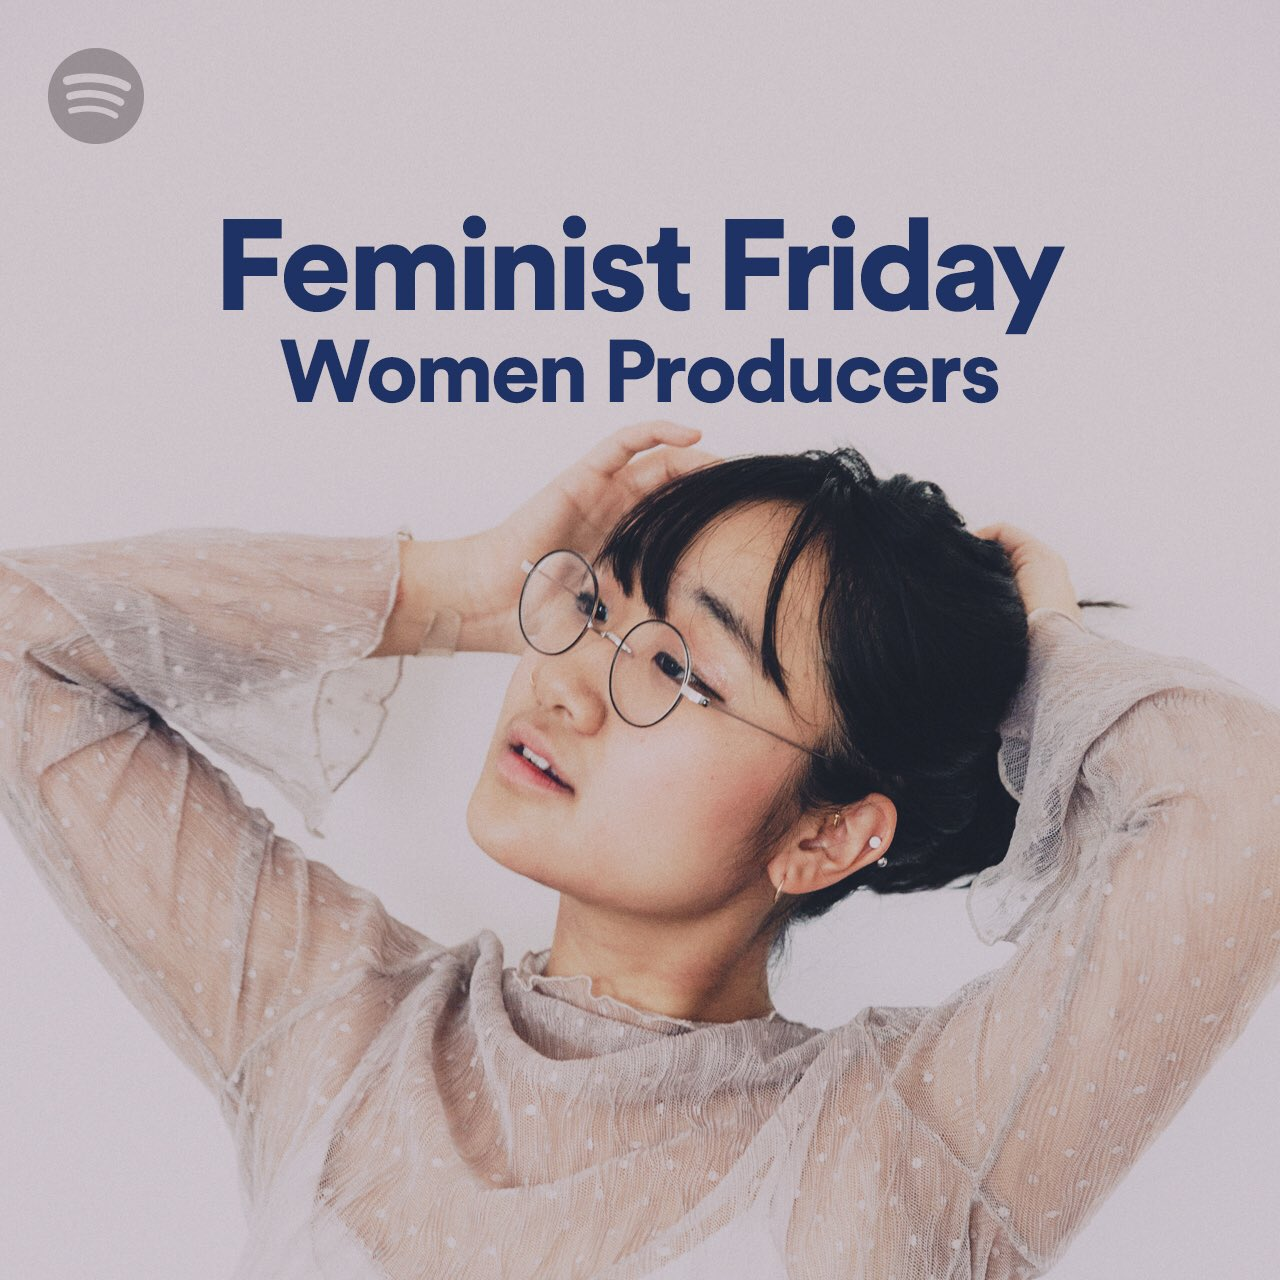 #FeministFriday is here. This week, we're featuring the work of female producers. �� https://t.co/2wnELpt8BT https://t.co/oQBsygADqq